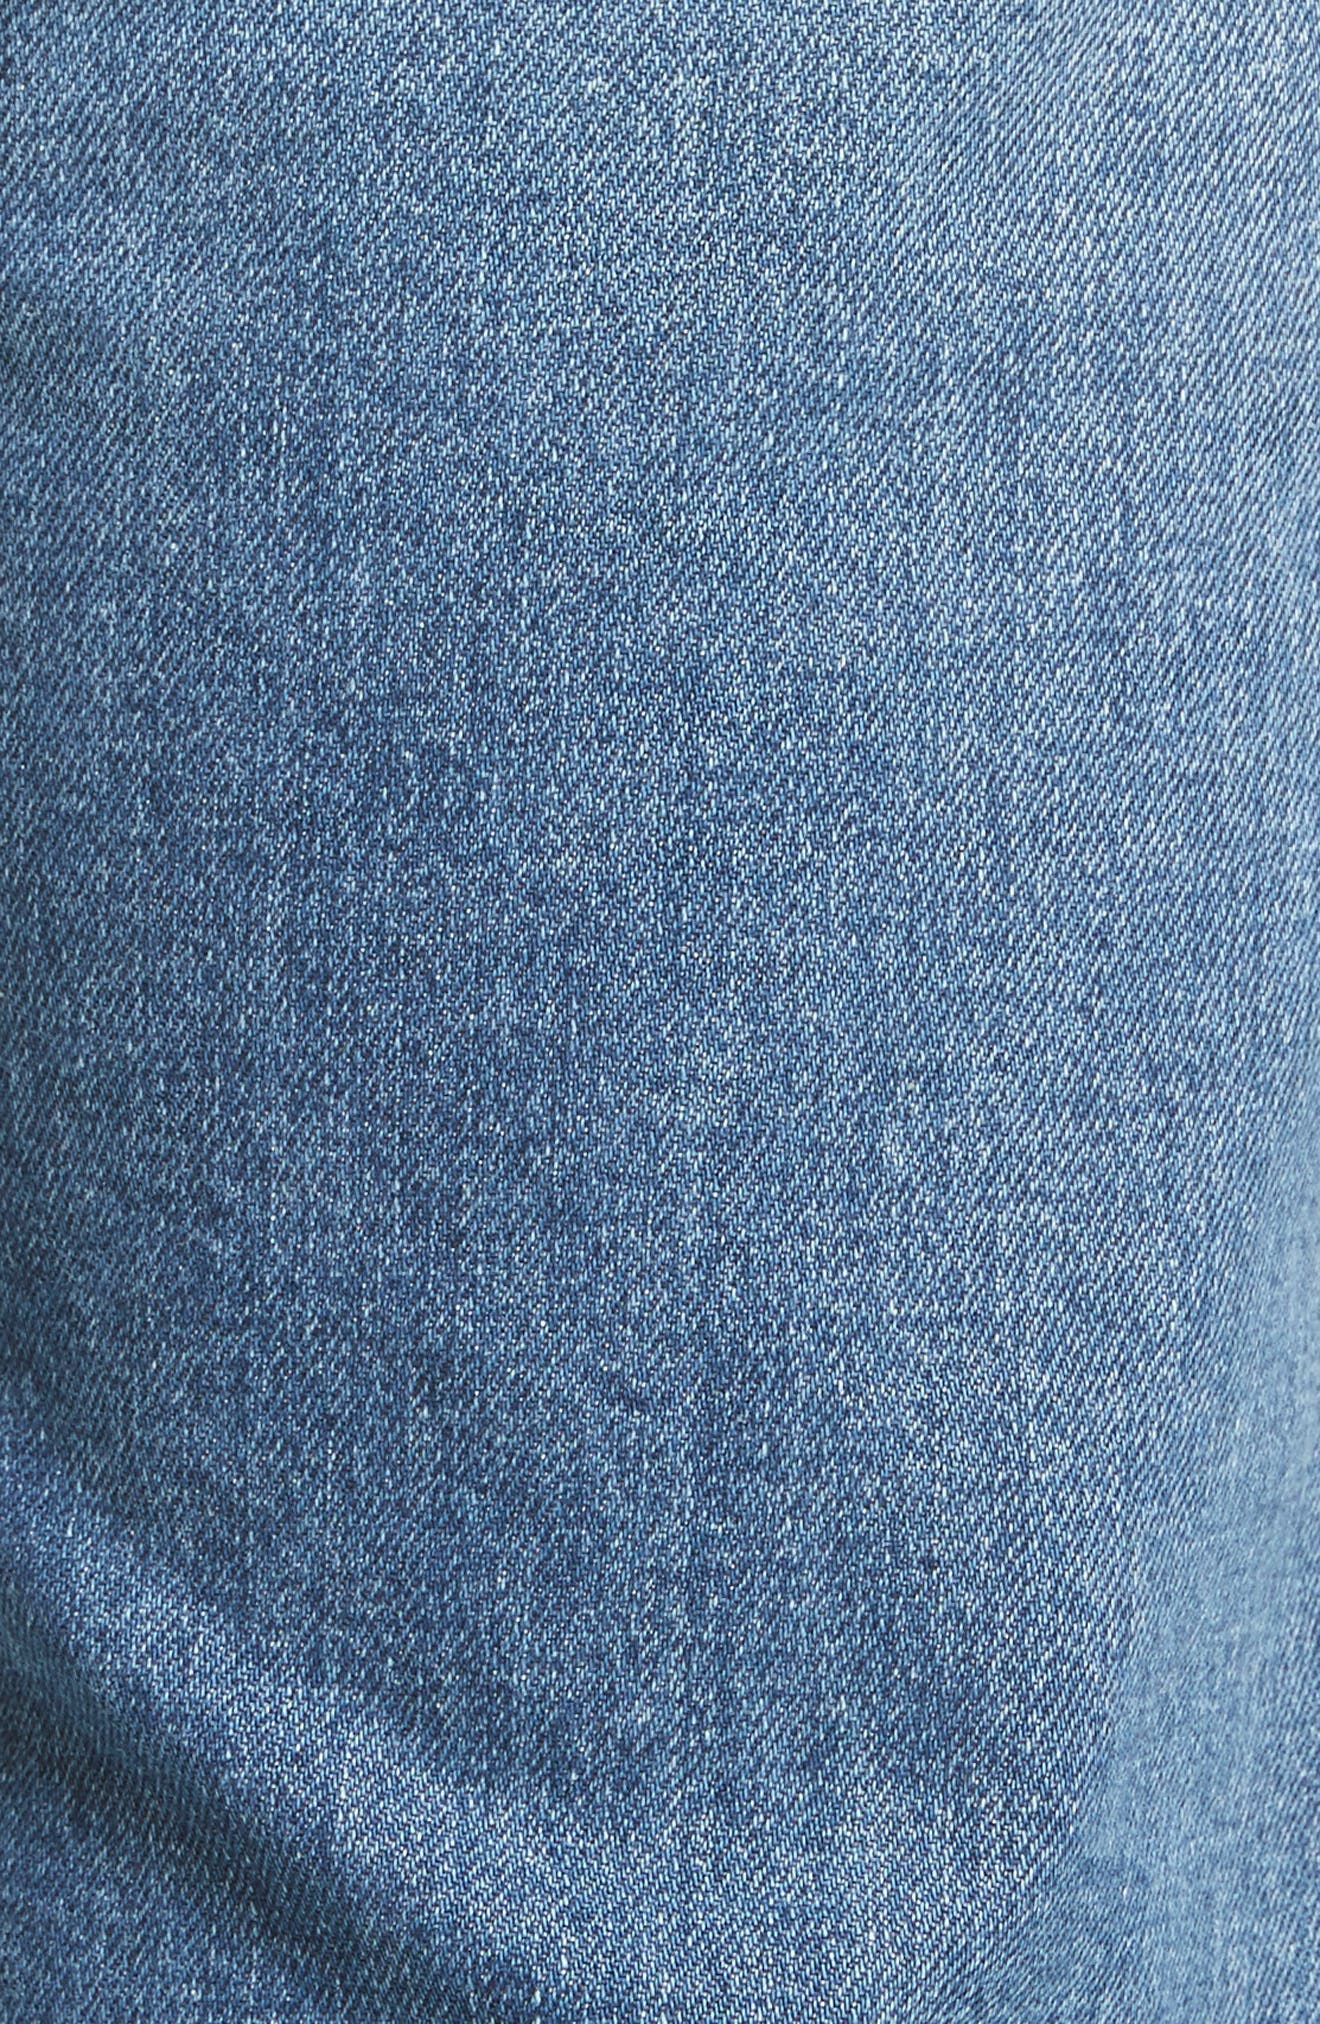 North Skinny Jeans,                             Alternate thumbnail 5, color,                             Mid Blue